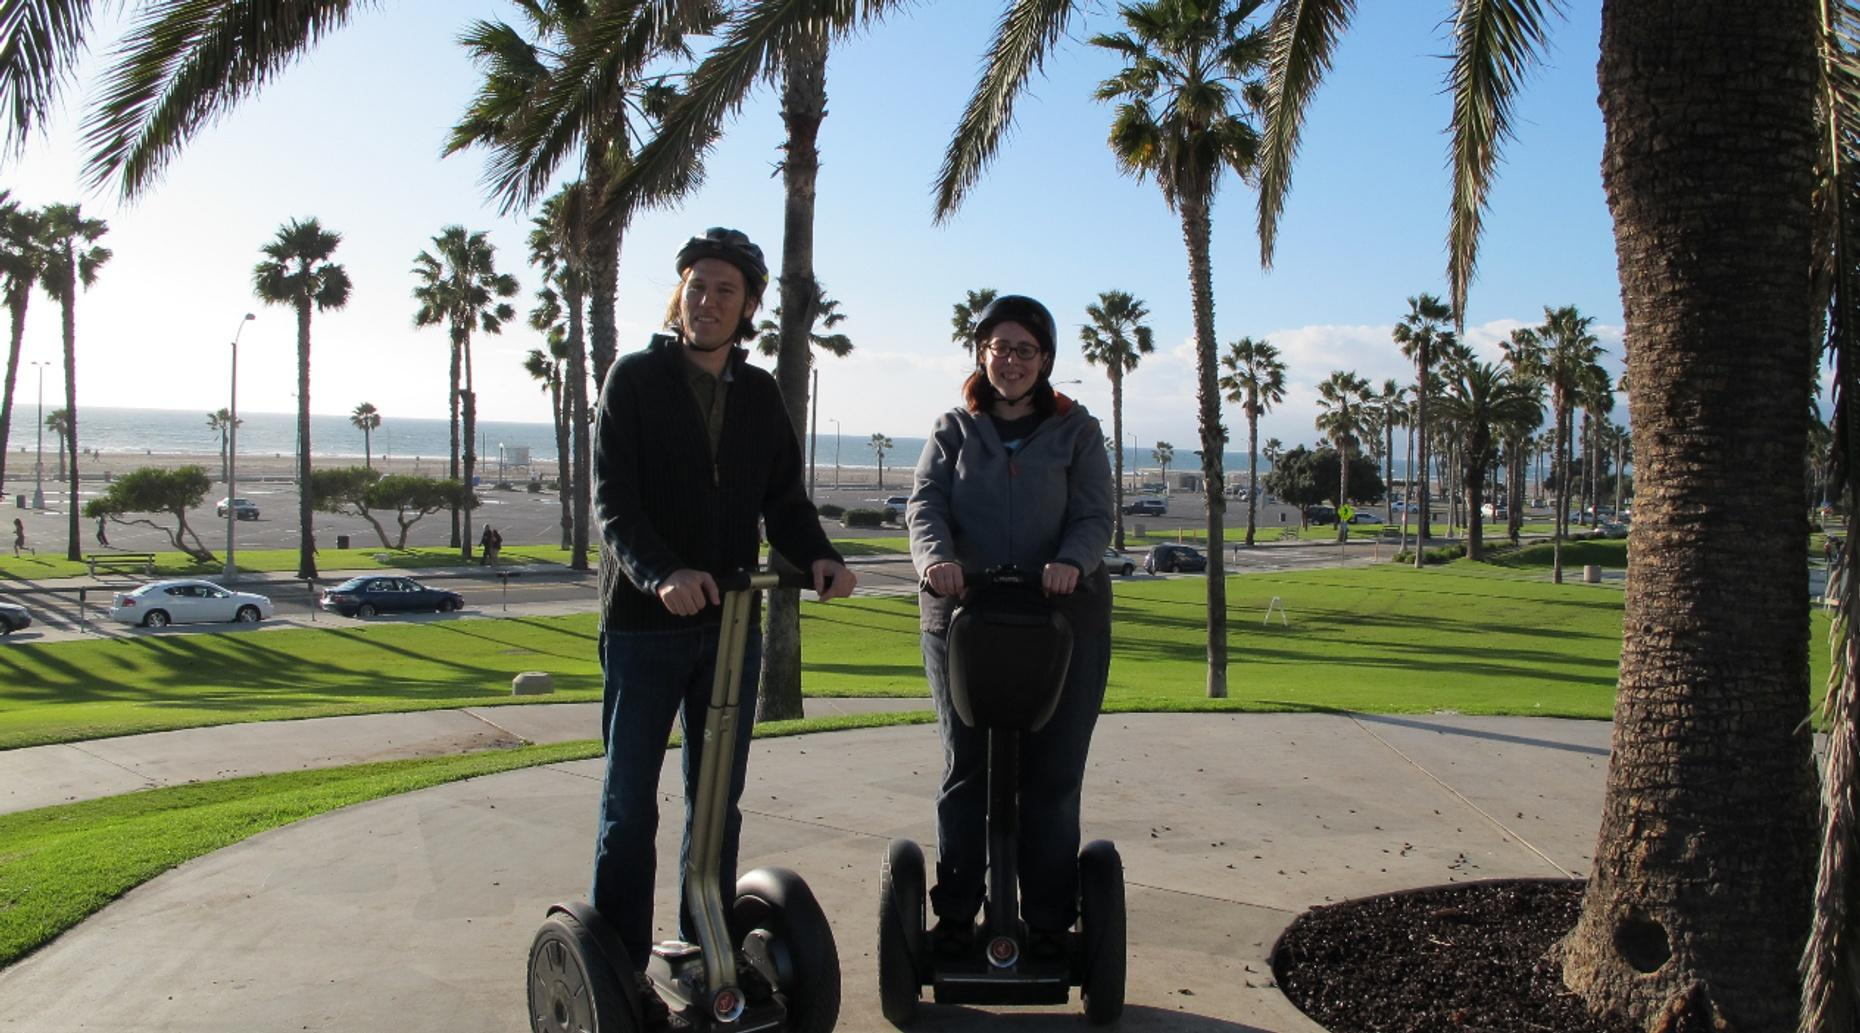 17th Street Causeway Segway Tour in Fort Lauderdale